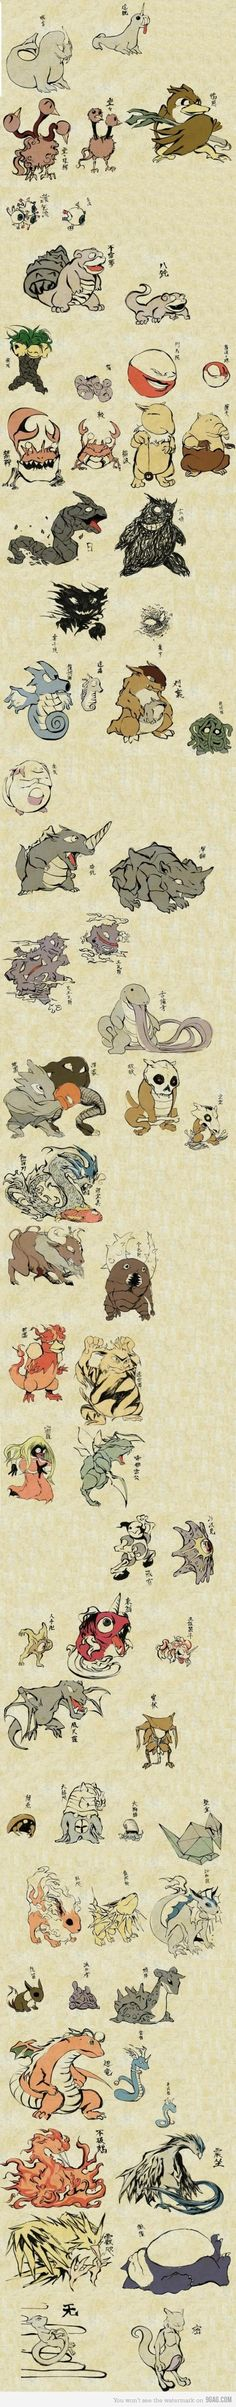 Pokemon in traditional style Japanese artwork.